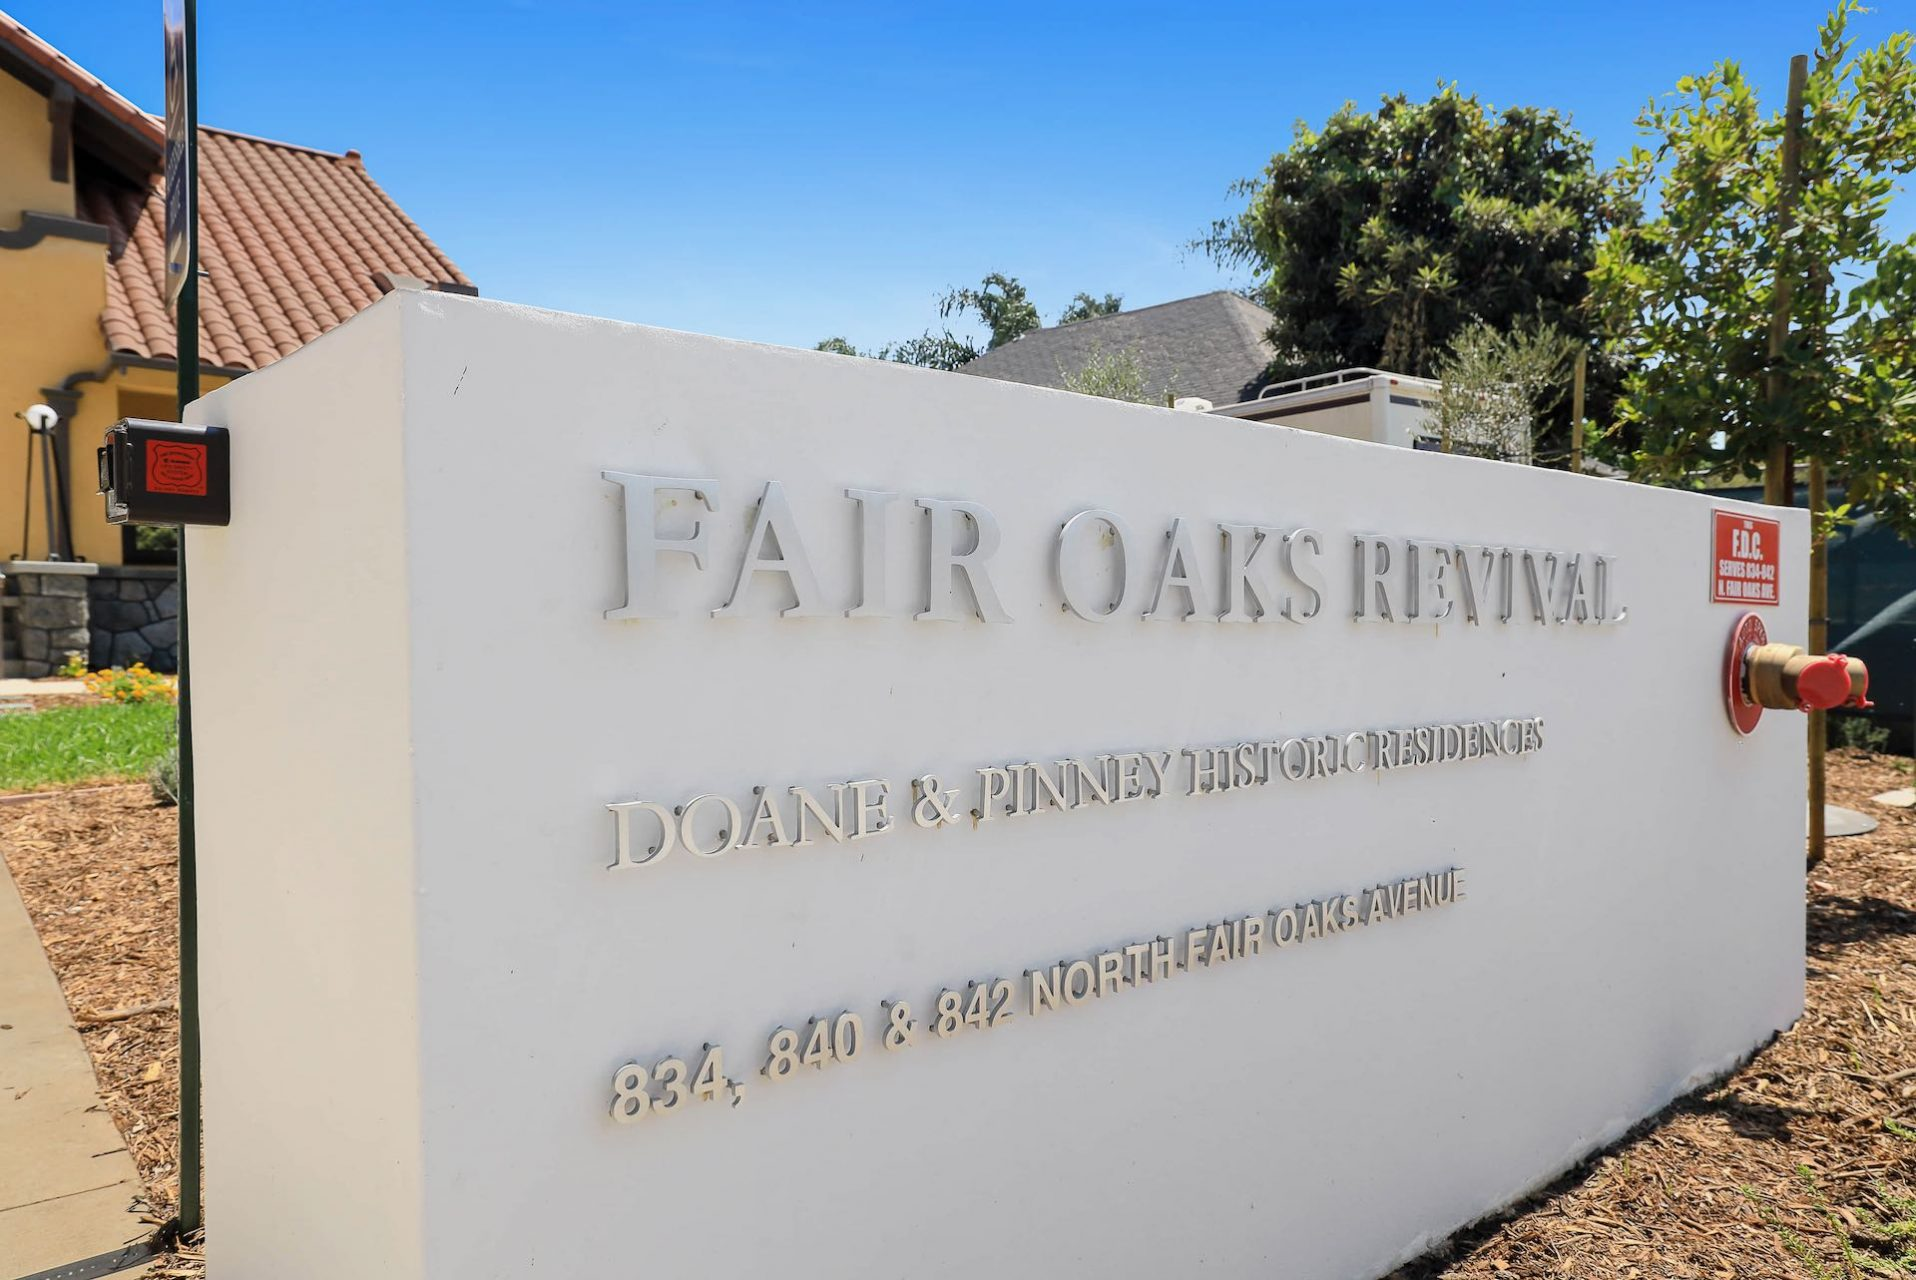 840 North Fair Oaks Avenue Print_2